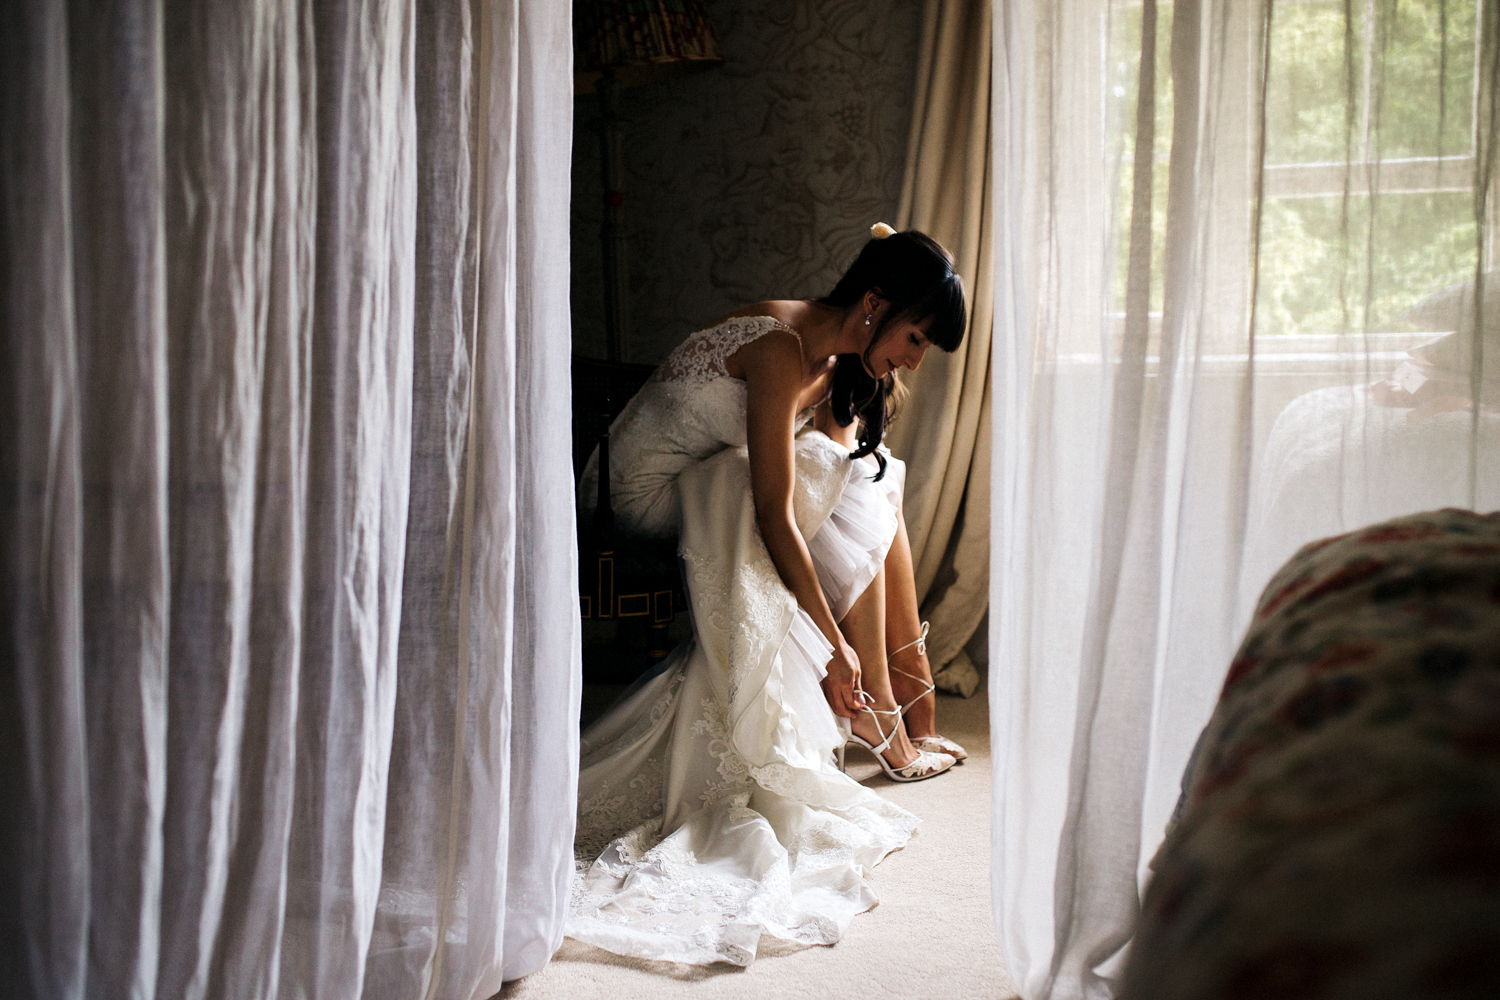 woman sitting in a wedding dress, putting her shoes on. wedding at dewsall court hereford. stop motion wedding films videos uk